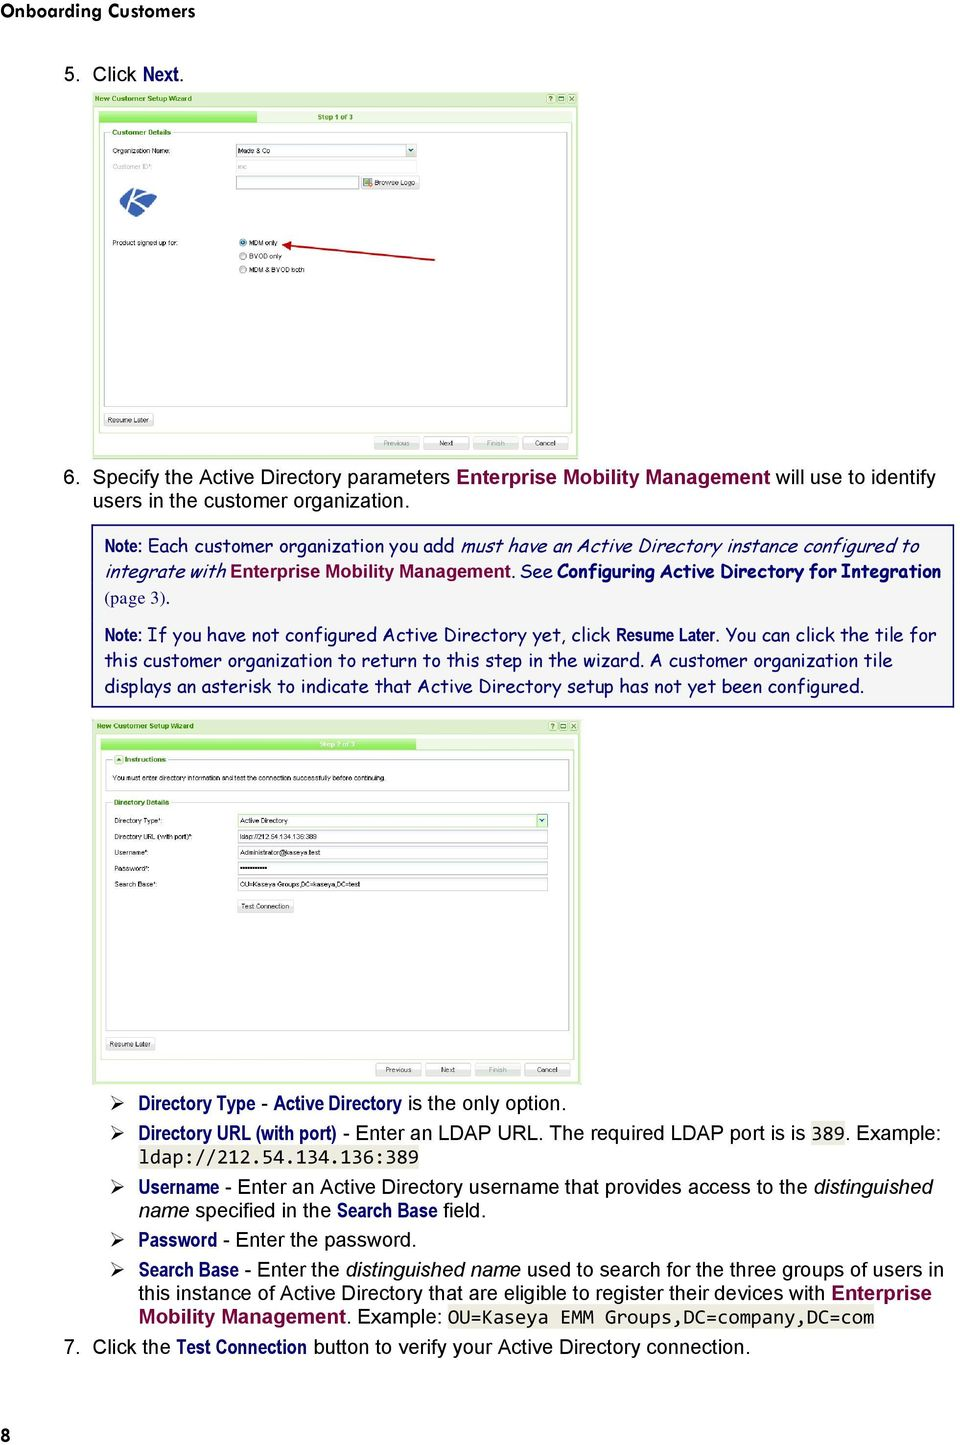 Note: If you have not configured Active Directory yet, click Resume Later. You can click the tile for this customer organization to return to this step in the wizard.